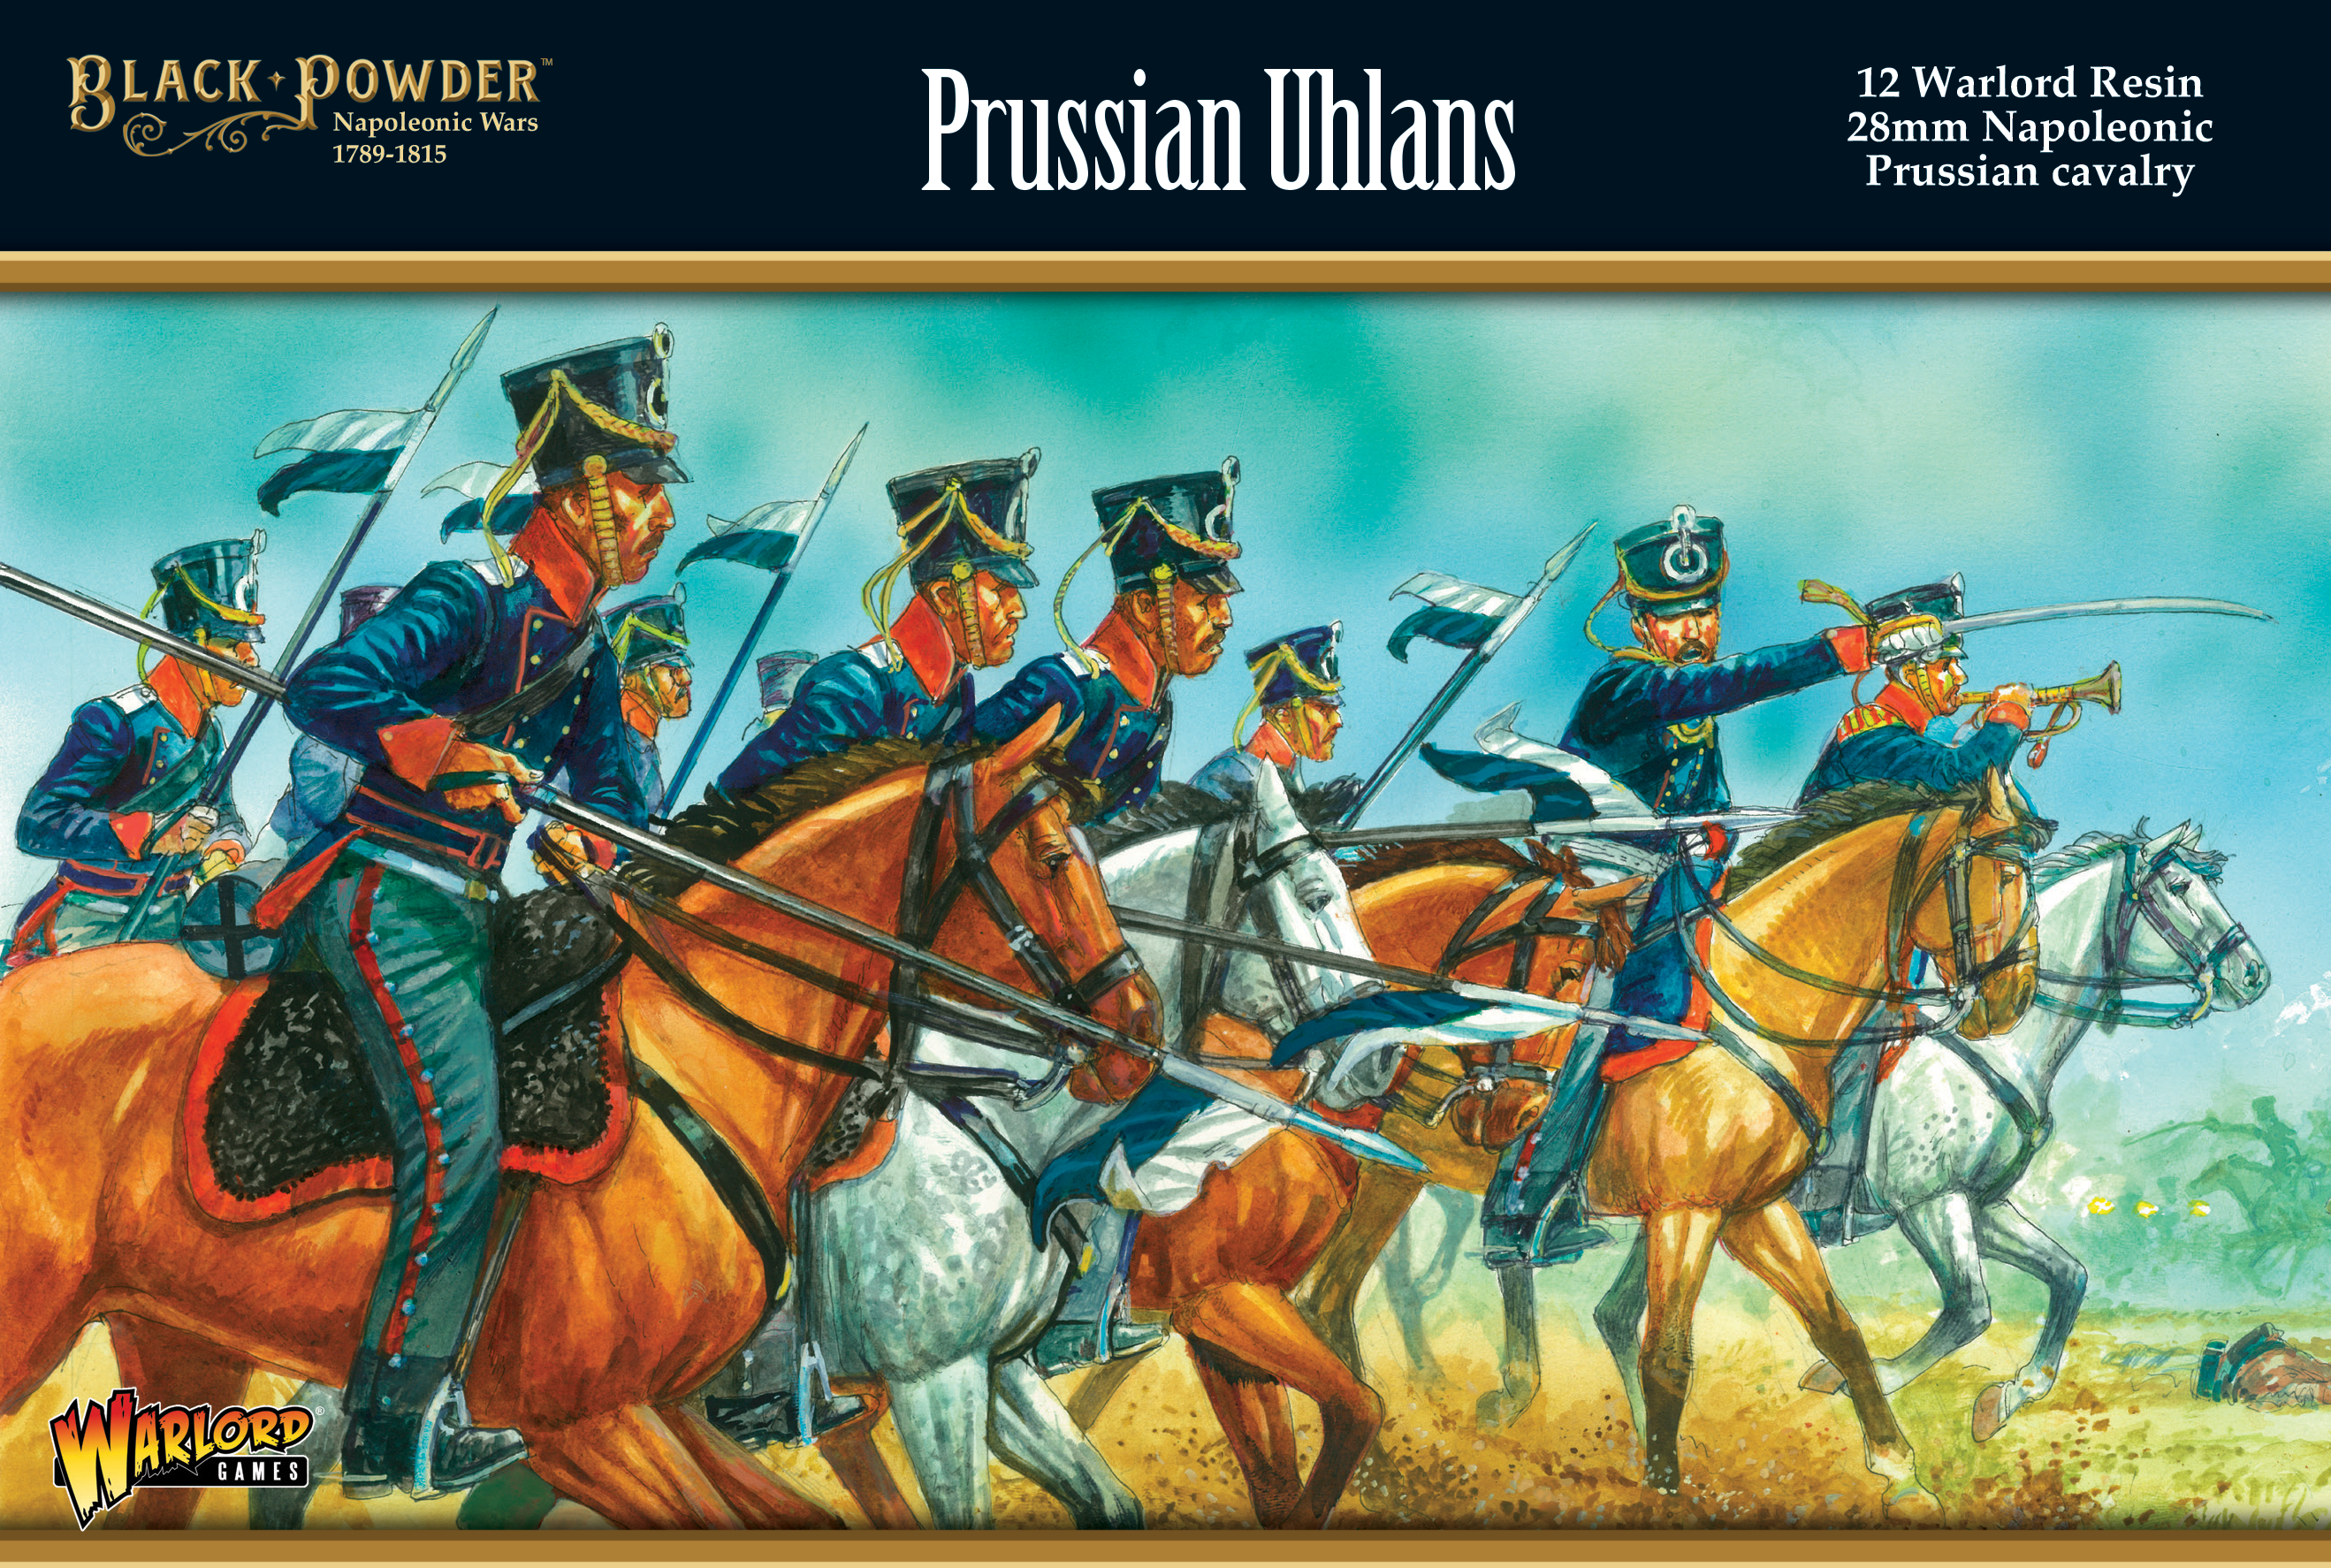 Prussian Cavalry - Uhlans